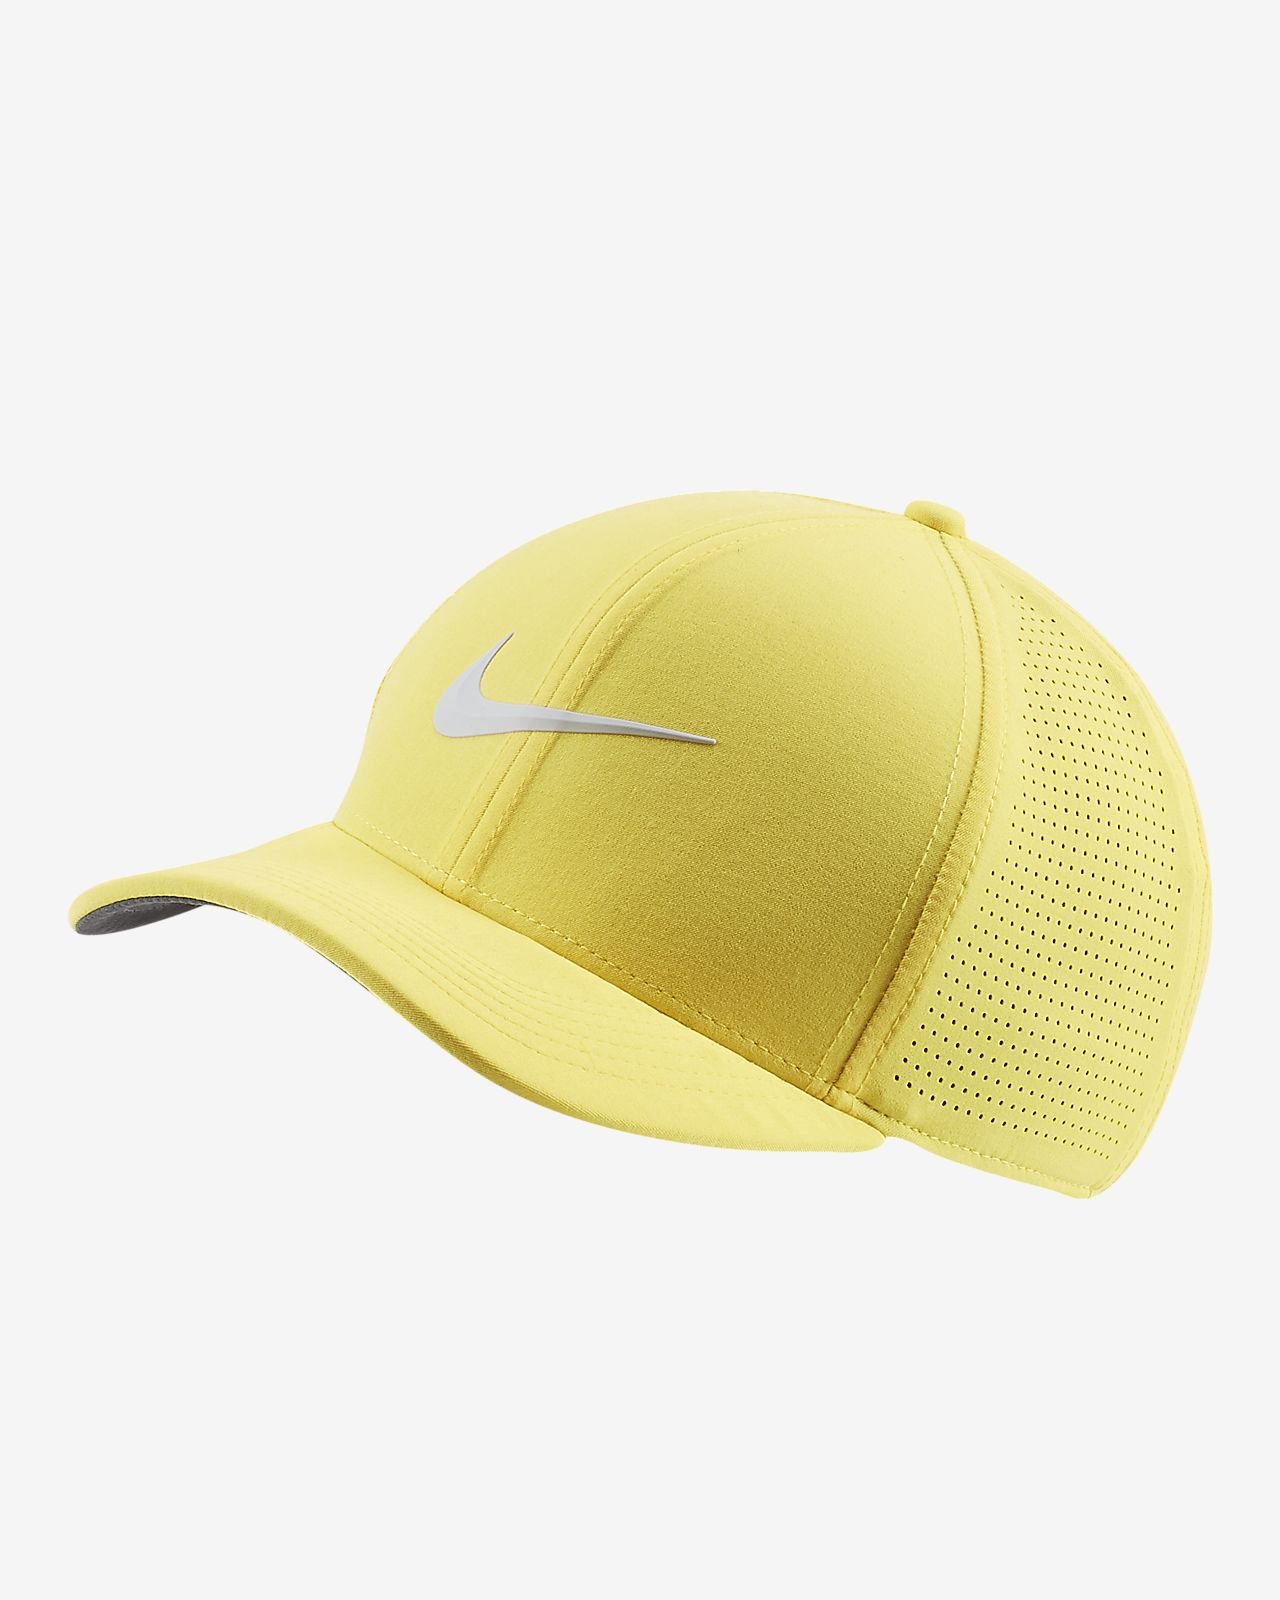 79dcc0d8904dcc Nike AeroBill Classic 99 Fitted Golf Hat. Nike.com